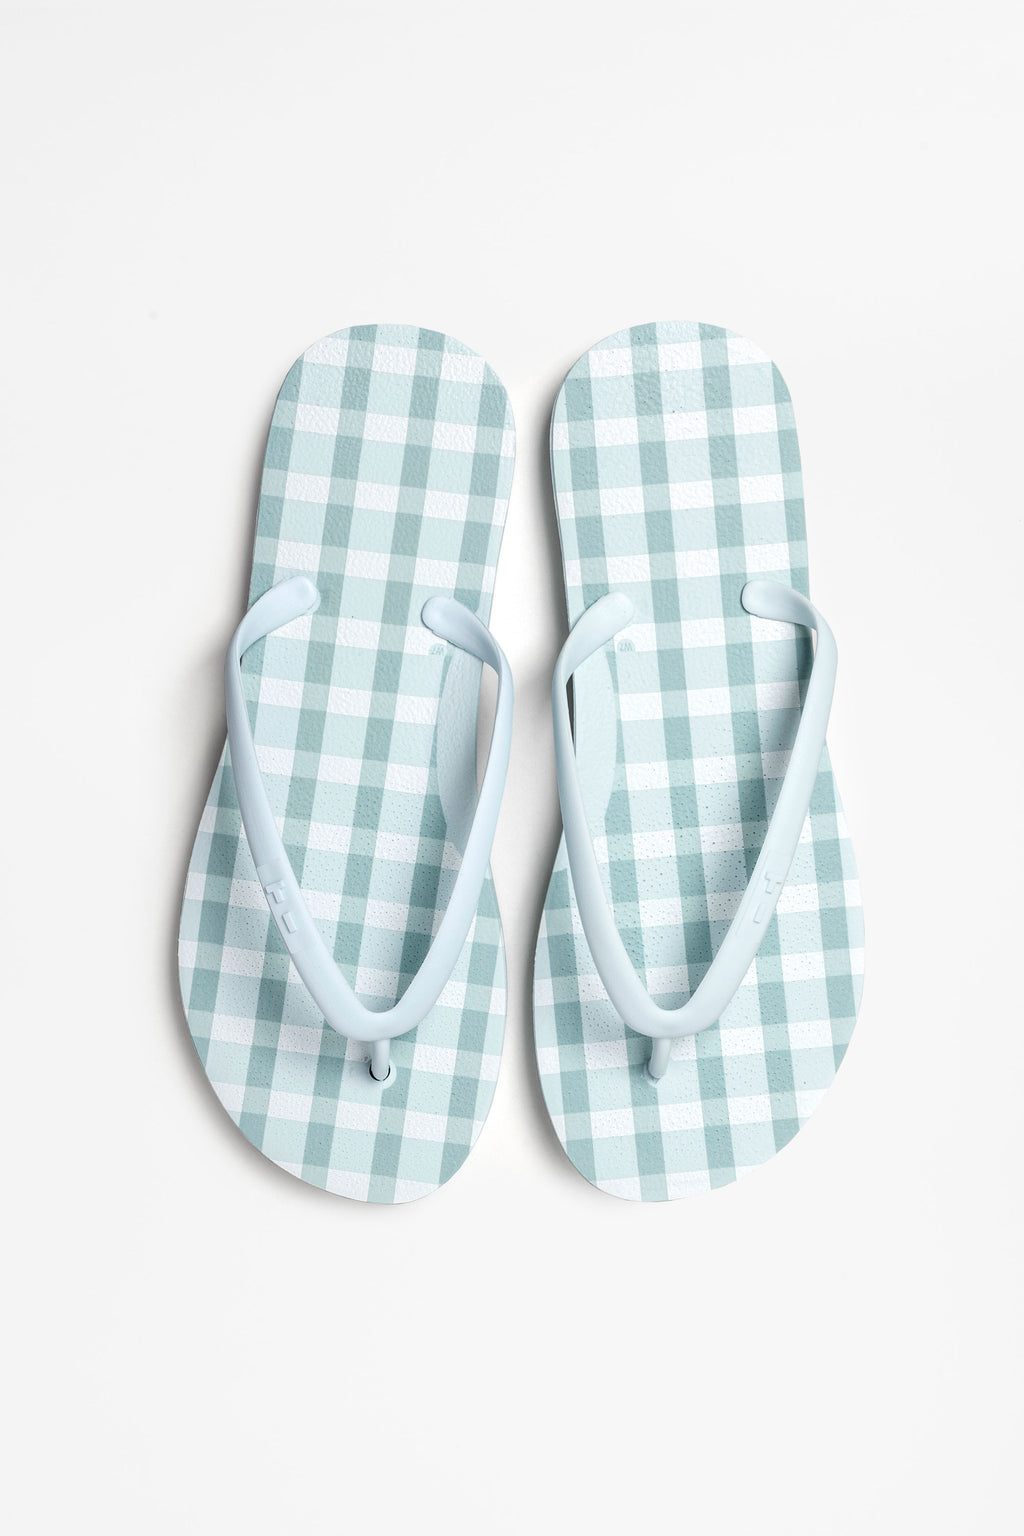 Women's icy blue flip flops with white checked pattern